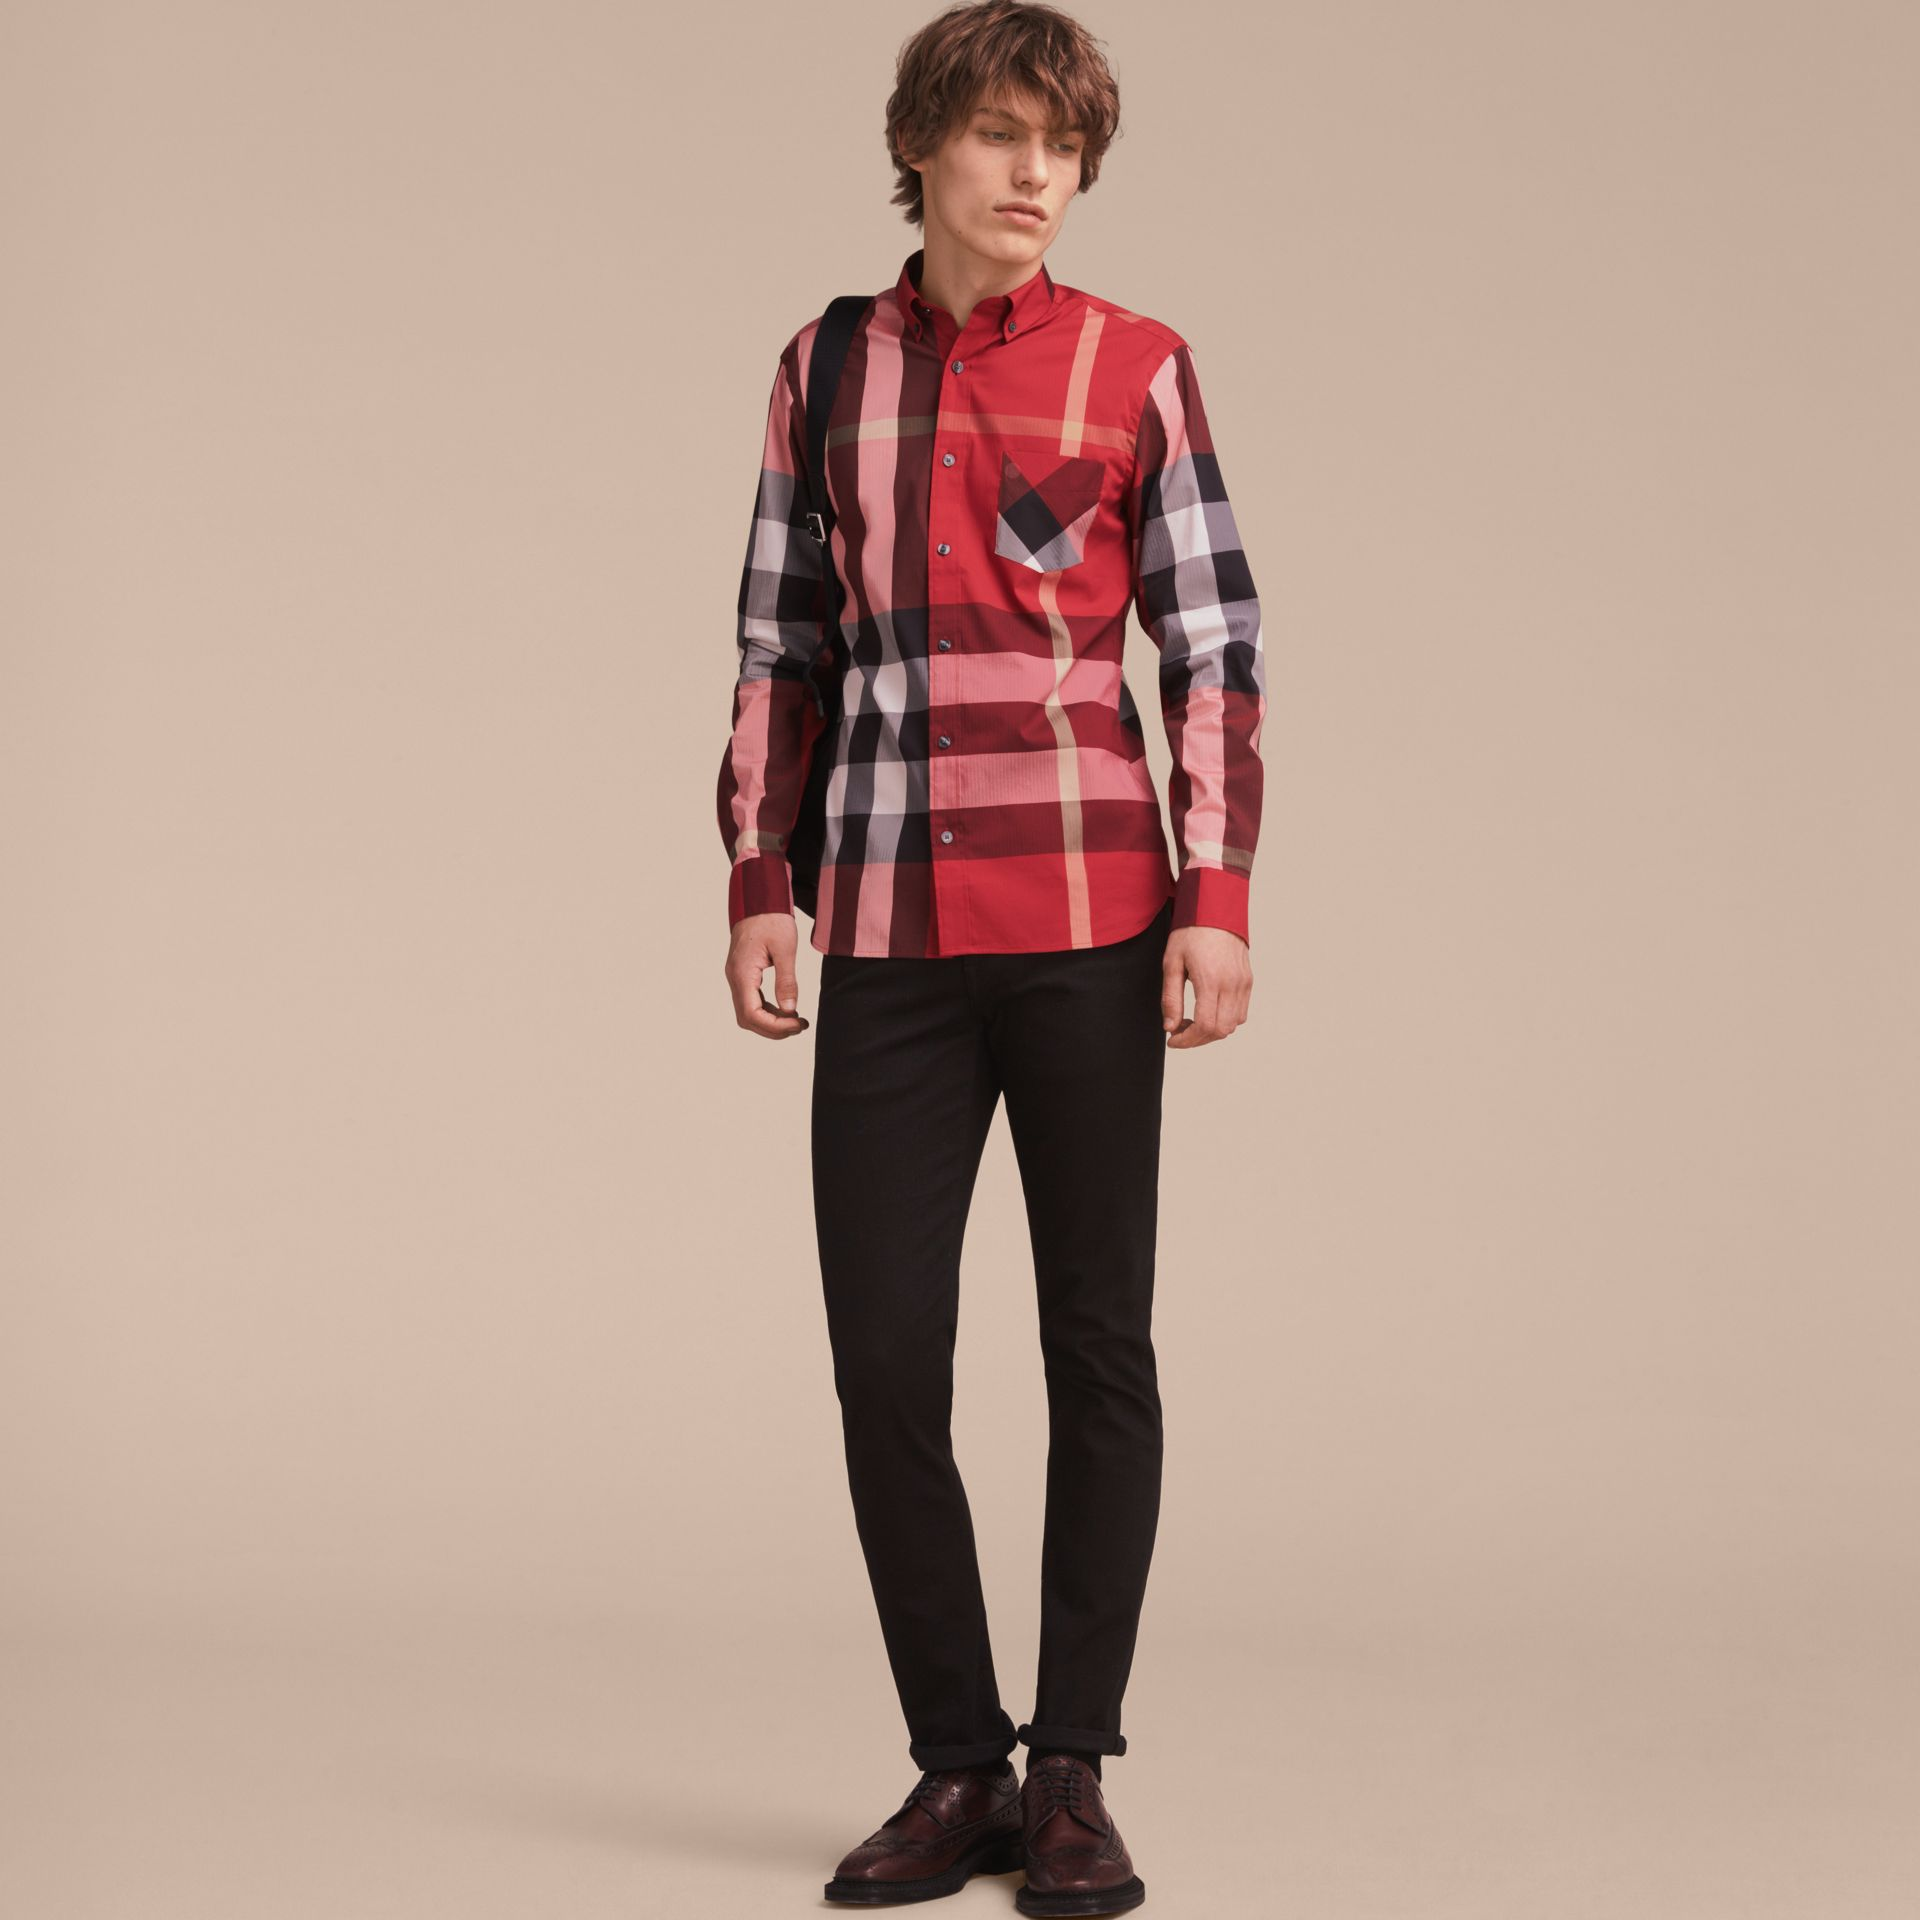 Button-down Collar Check Stretch Cotton Blend Shirt in Parade Red - Men | Burberry Canada - gallery image 6